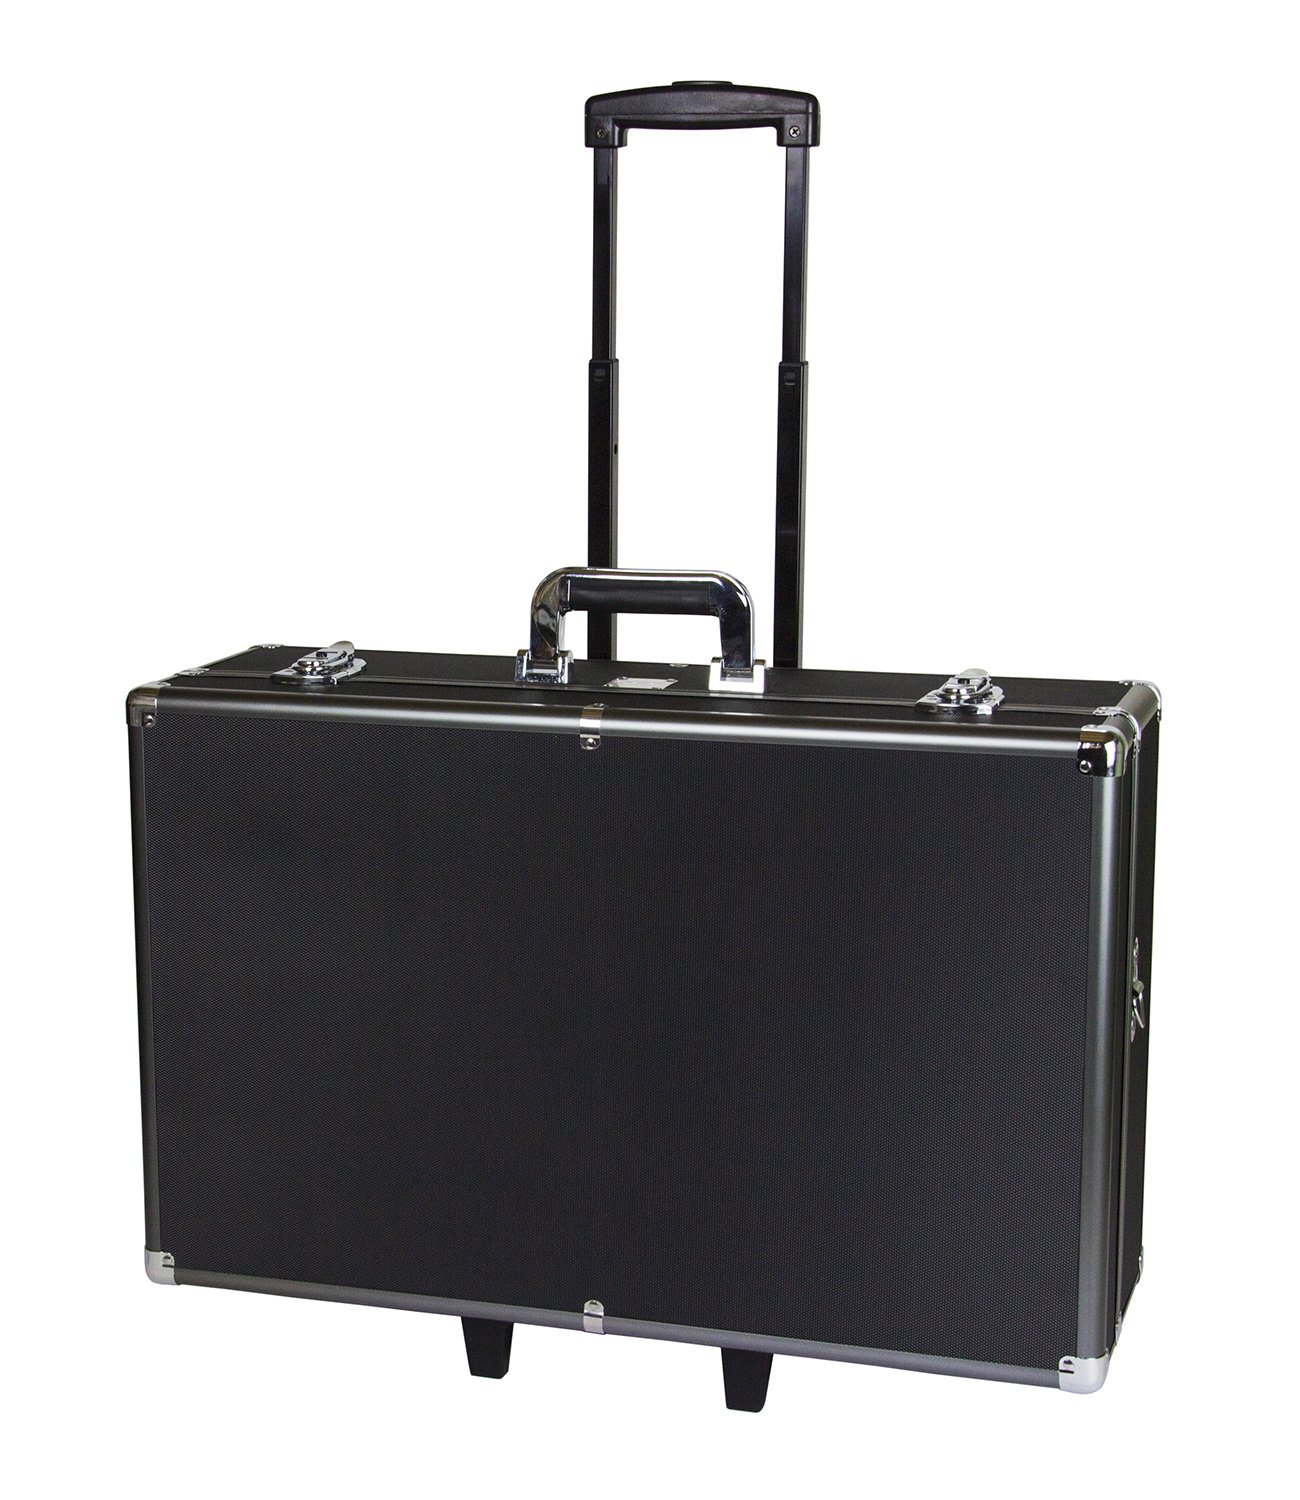 Professional Series Metal Frame Customizable Large Hard Case with Locks, Carrying Handle and Wheels for High Impact Absorption - Photographic Equipment